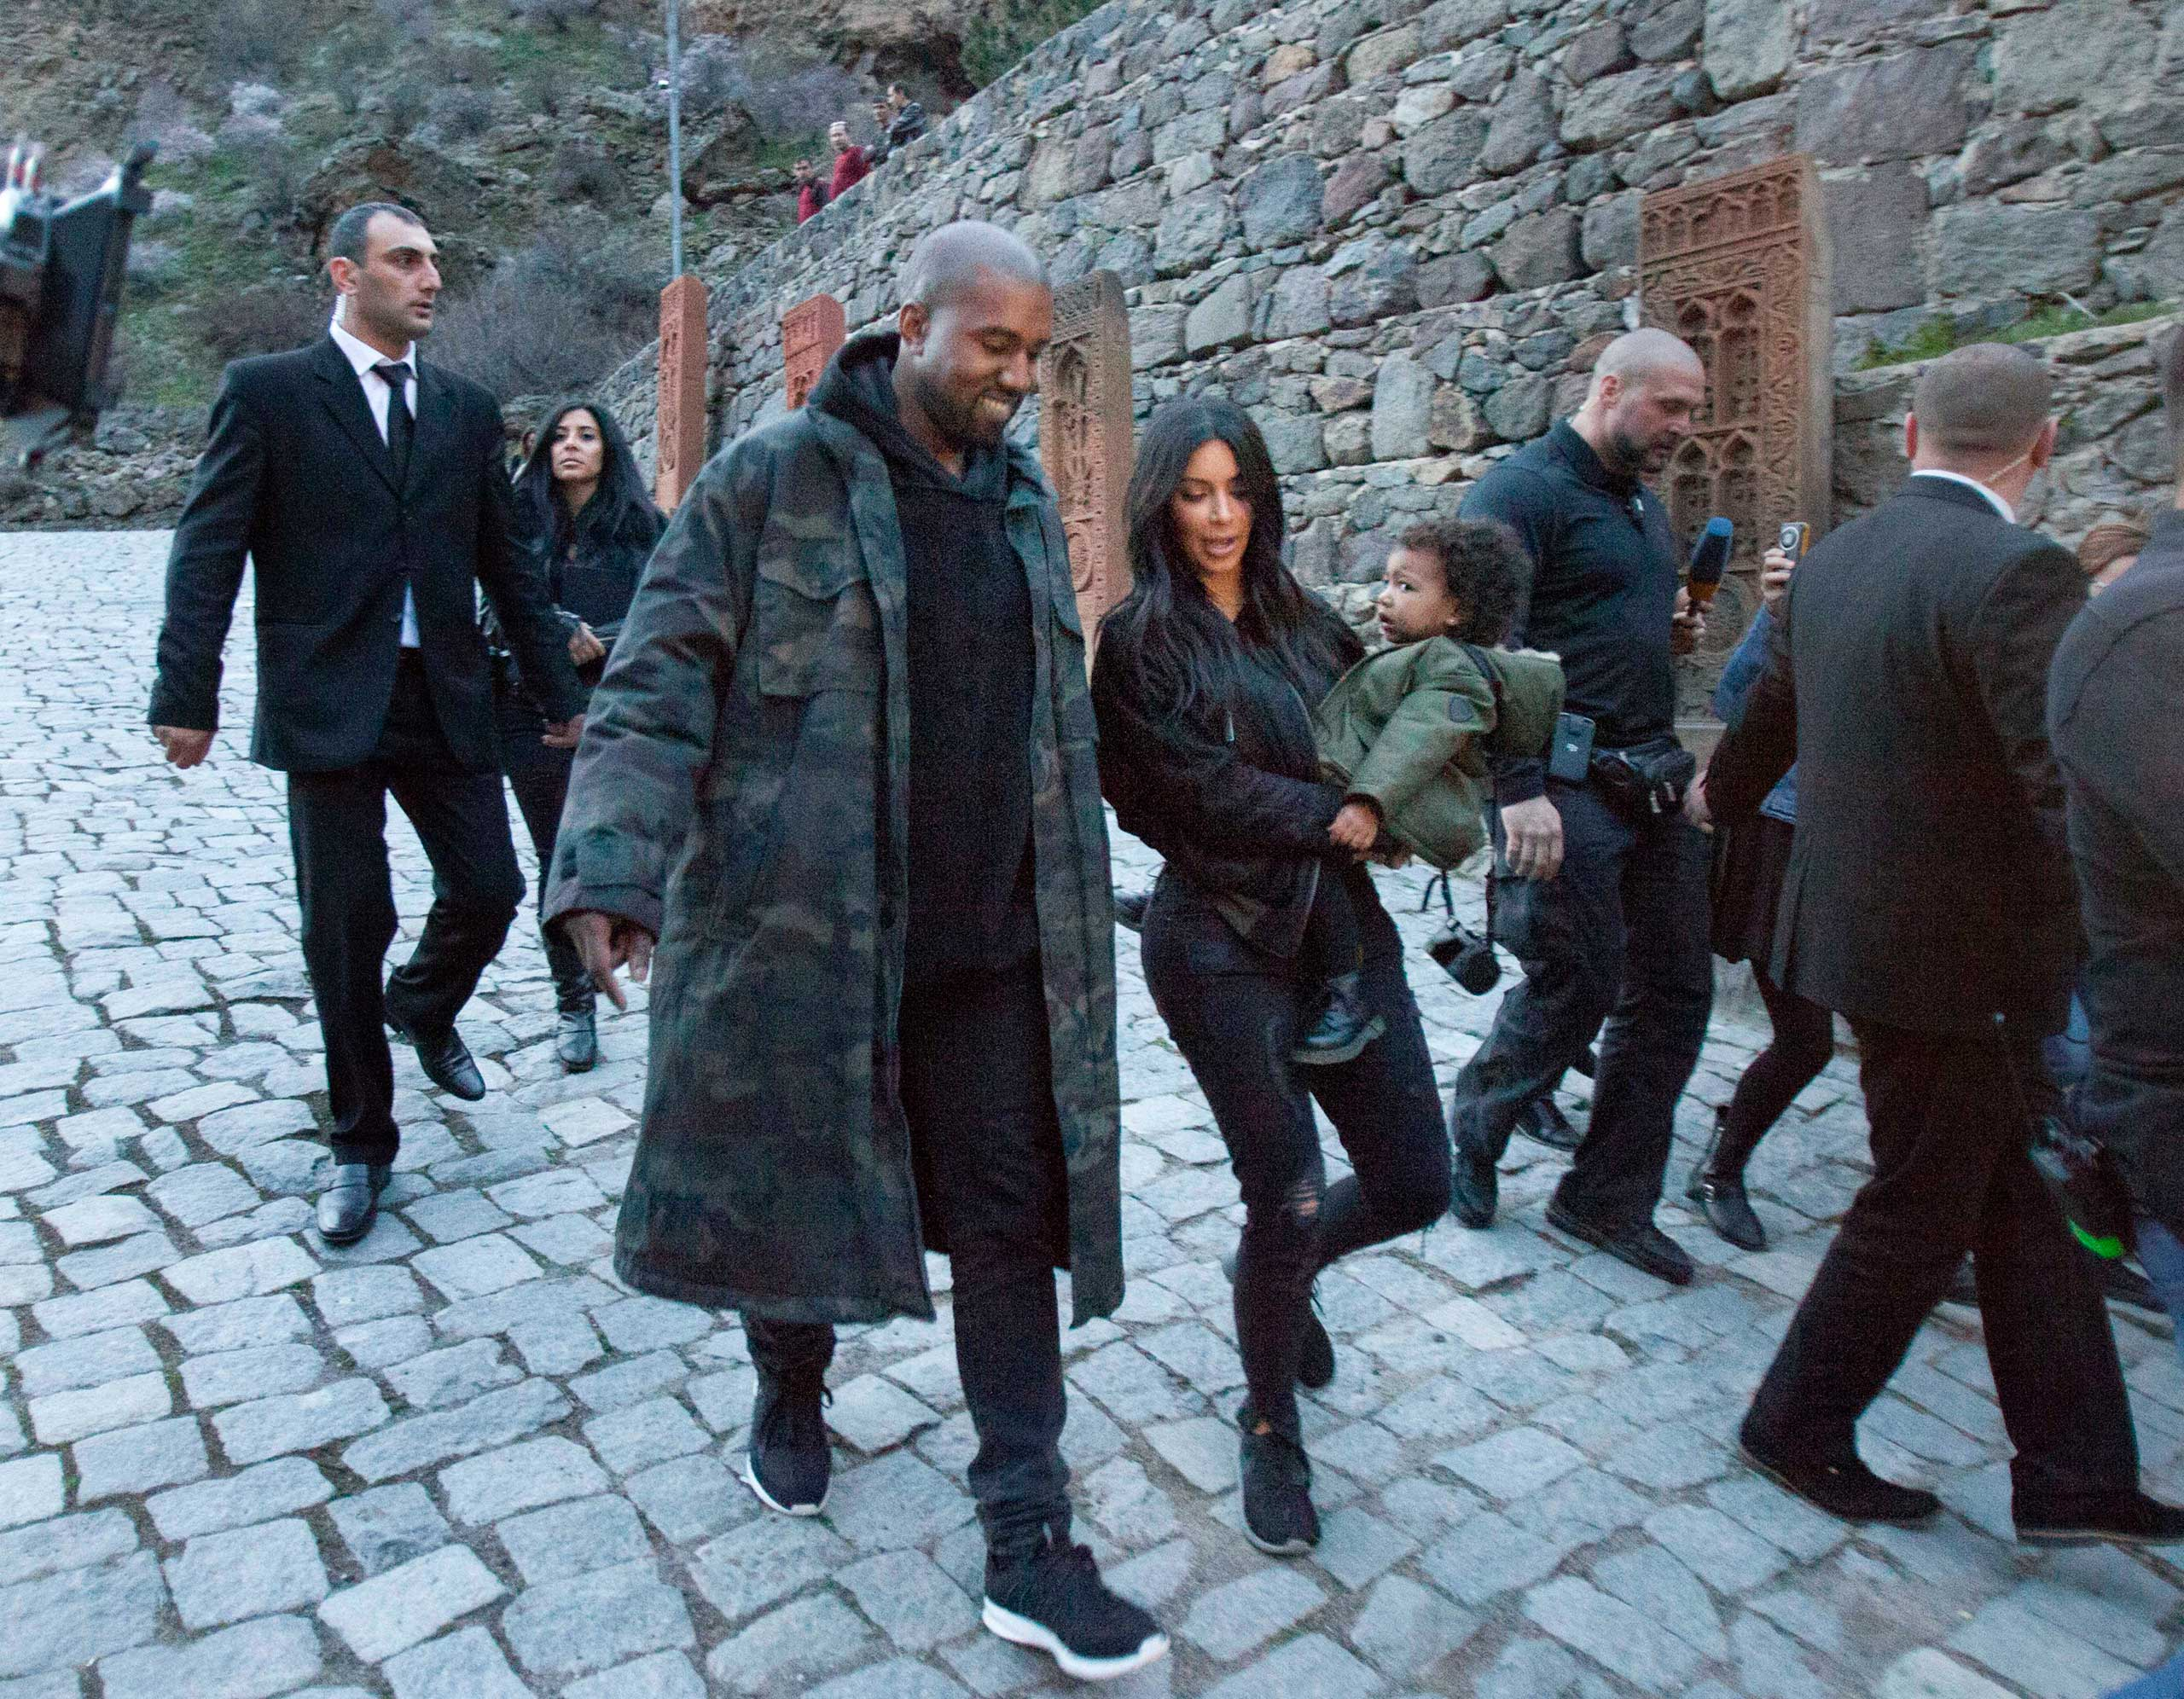 U.S. TV personality Kim Kardashian, center, carriers daughter North as she walks alongside her husband Kanye West visit the Geghard Monastery near Goght, Armenia, April 9, 2015.